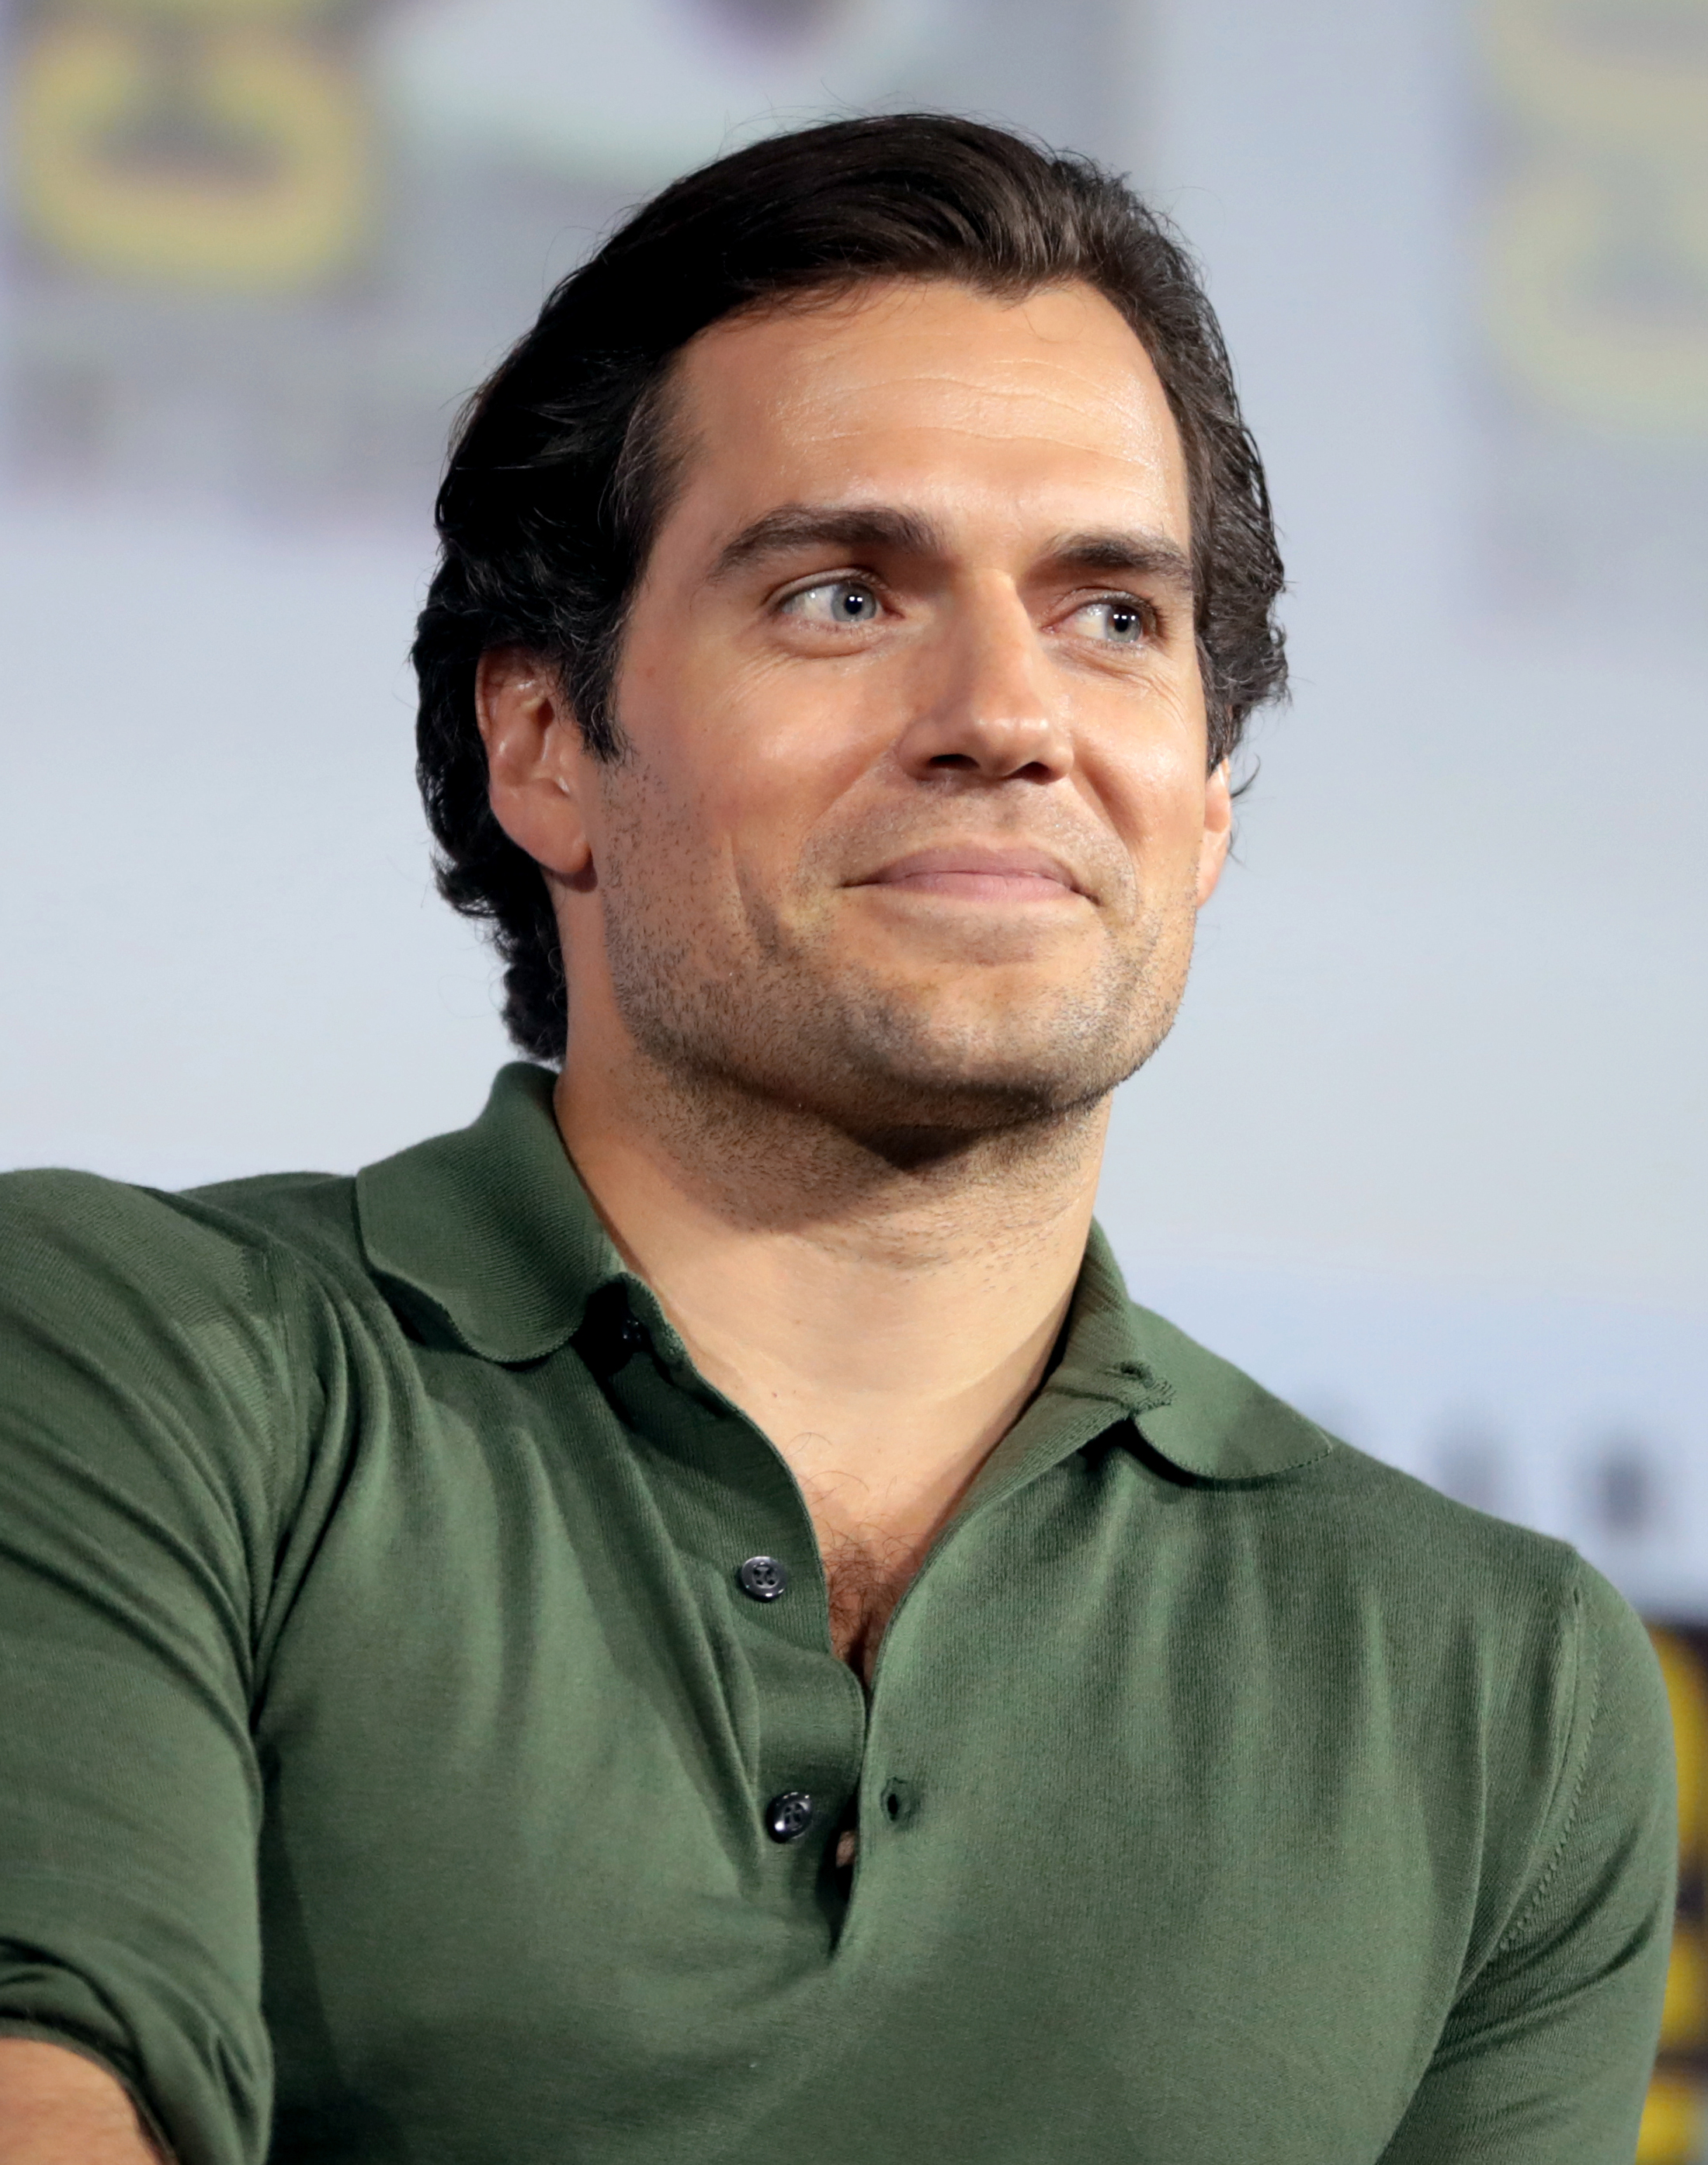 The 37-year old son of father (?) and mother(?) Henry Cavill in 2020 photo. Henry Cavill earned a million dollar salary - leaving the net worth at 14 million in 2020